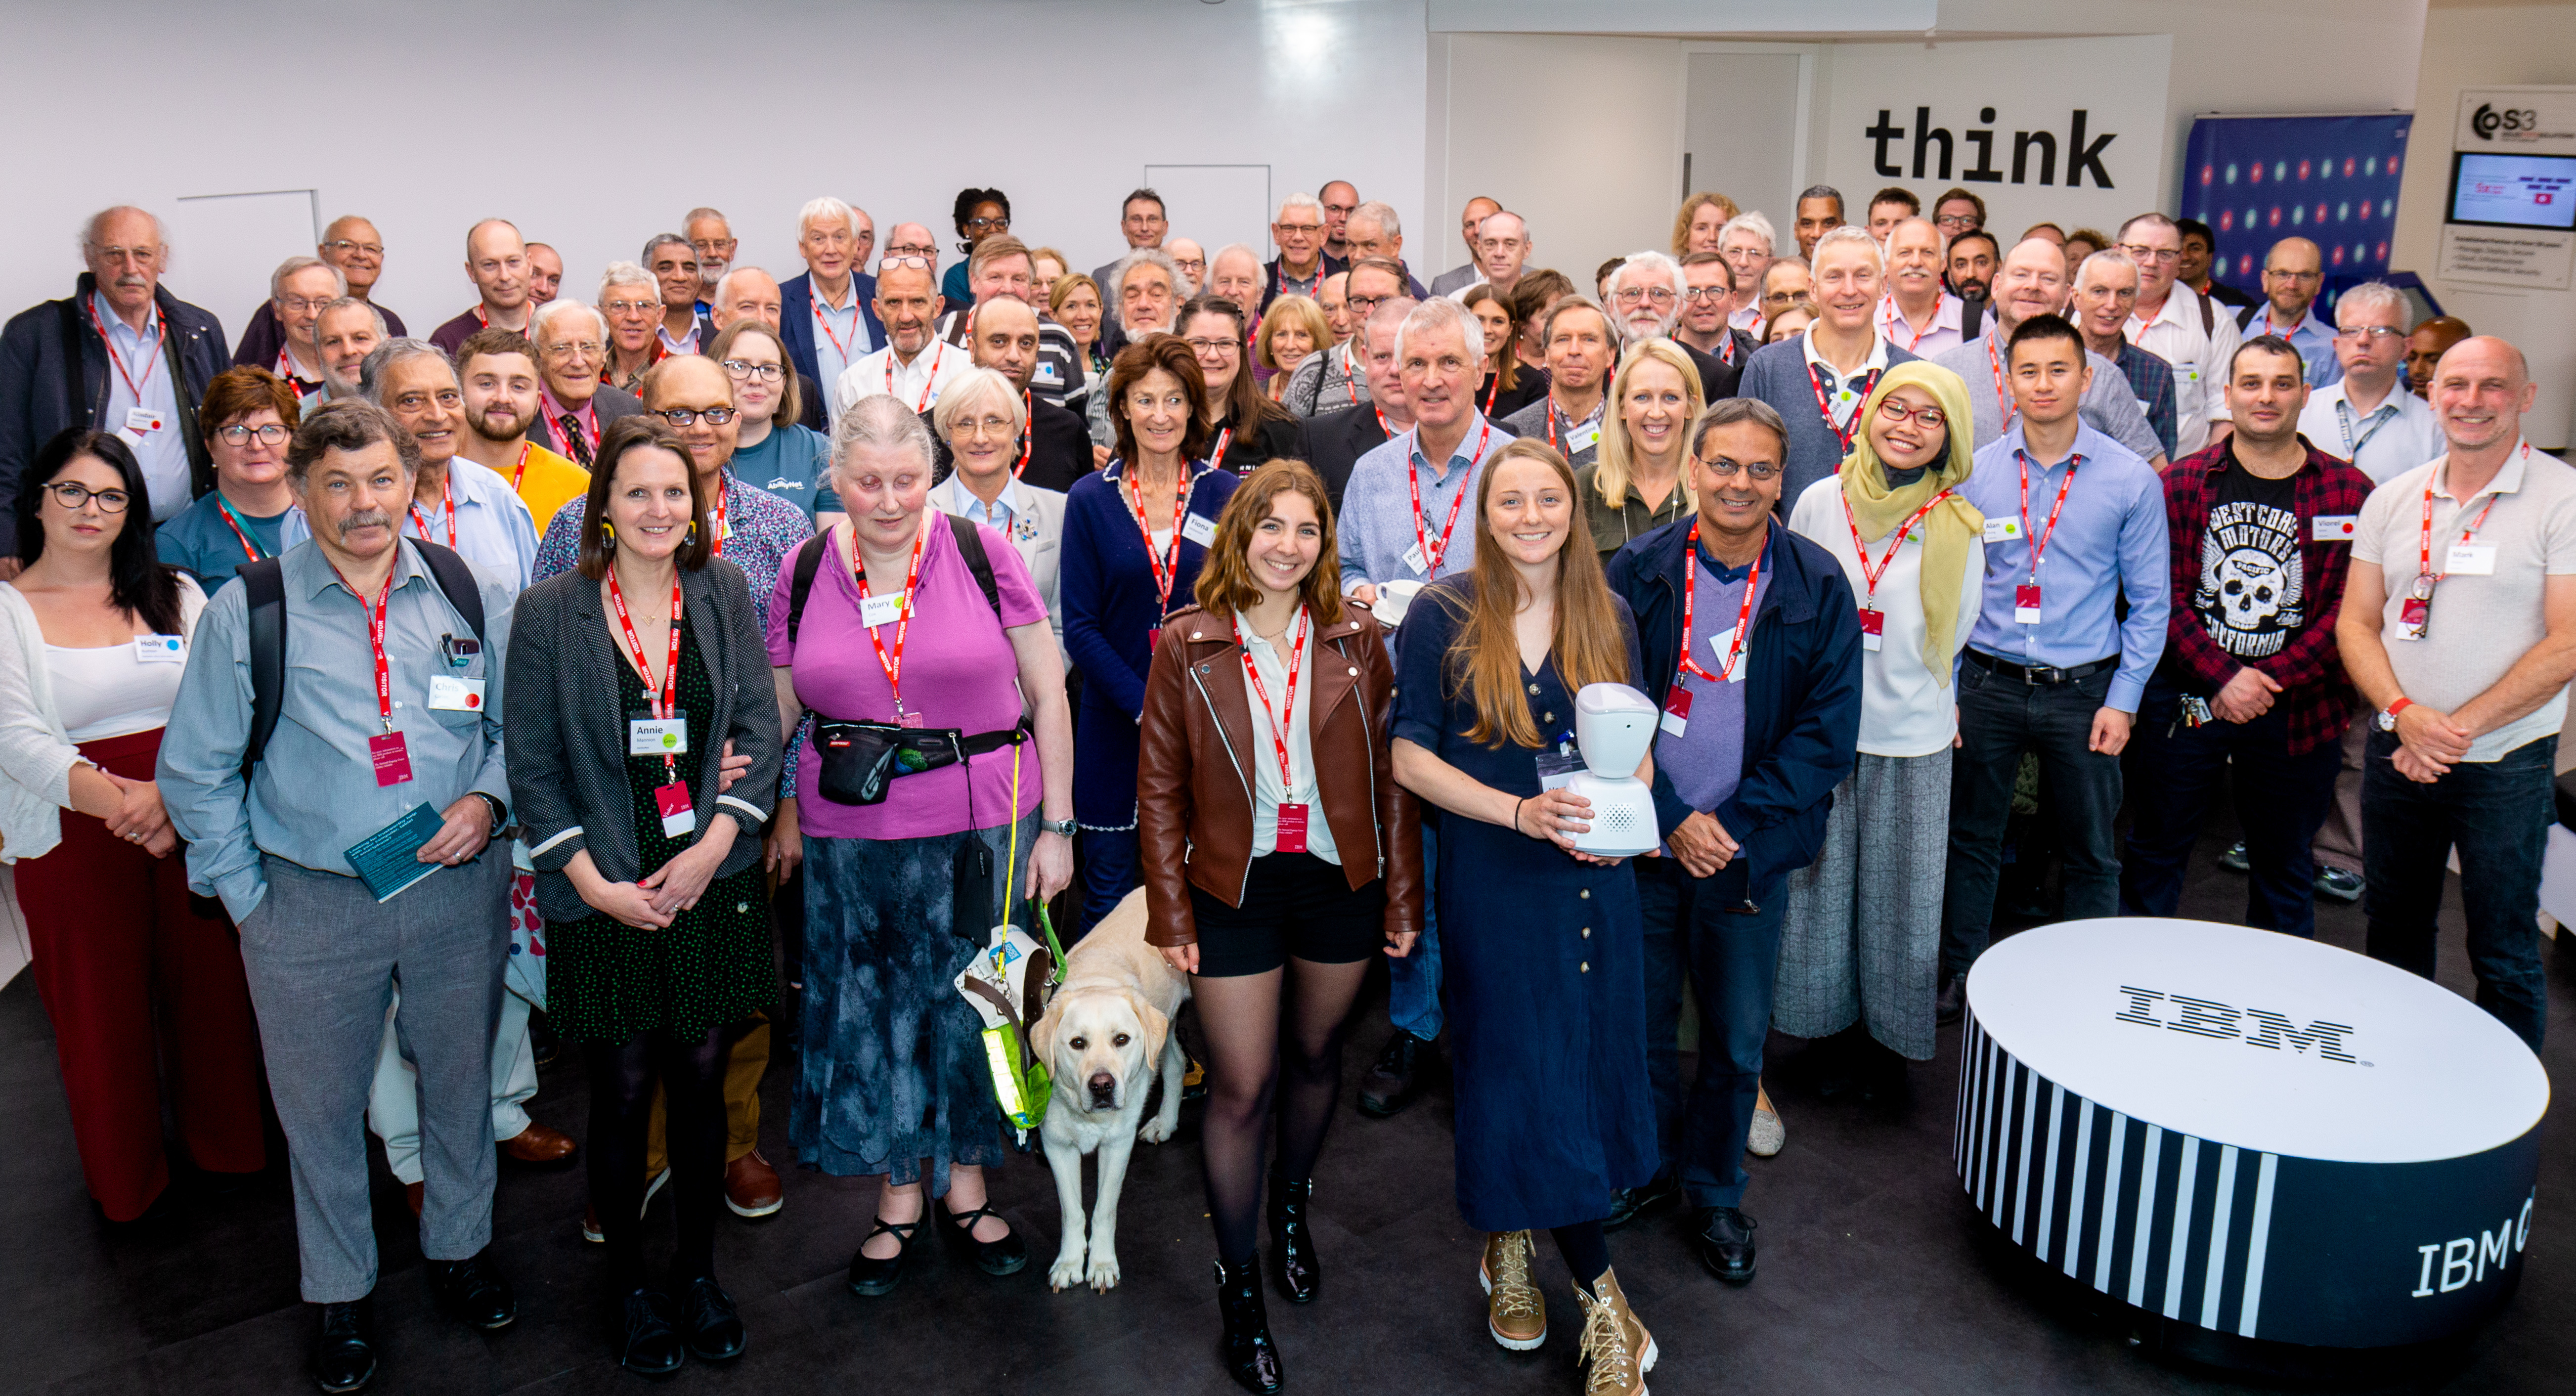 AbilityNet and RNIB volunteers standing together at the event, smiling facing the camera